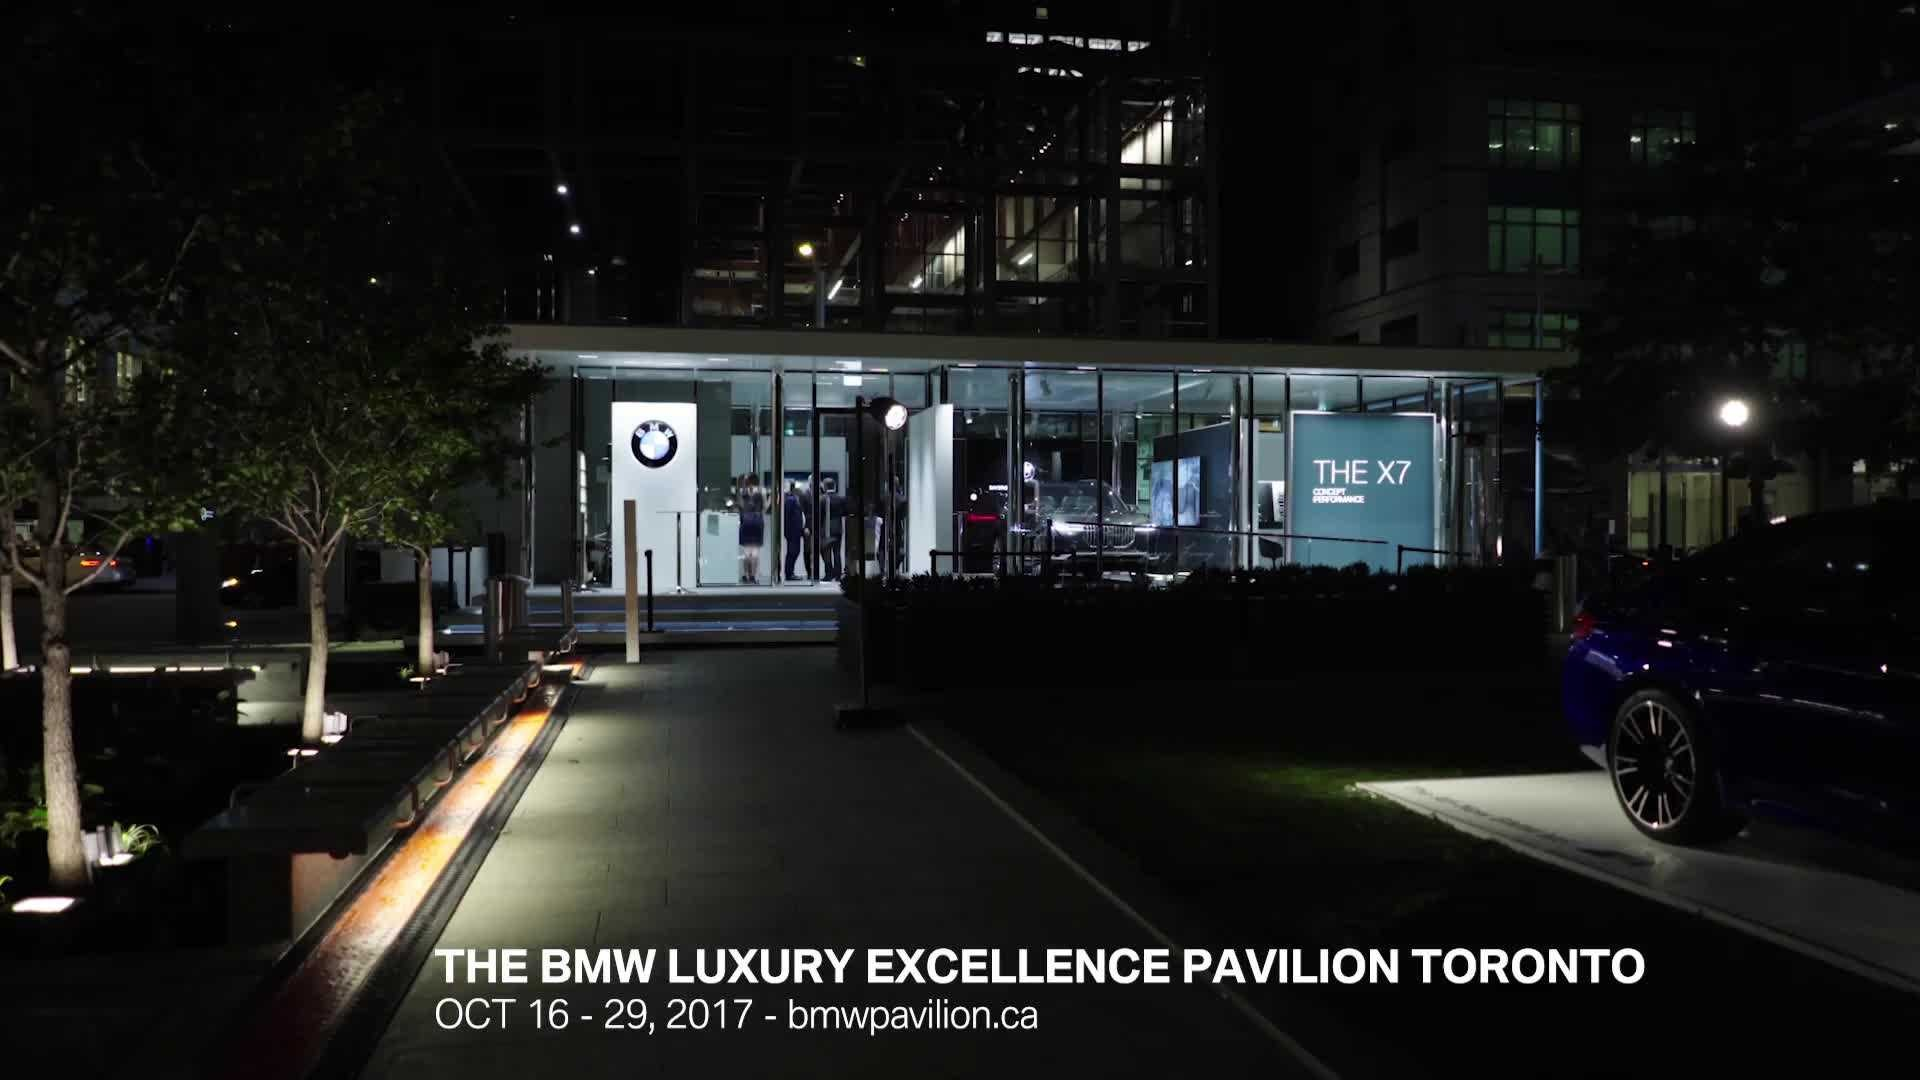 the bmw luxury excellence pavilion is constructed for its north